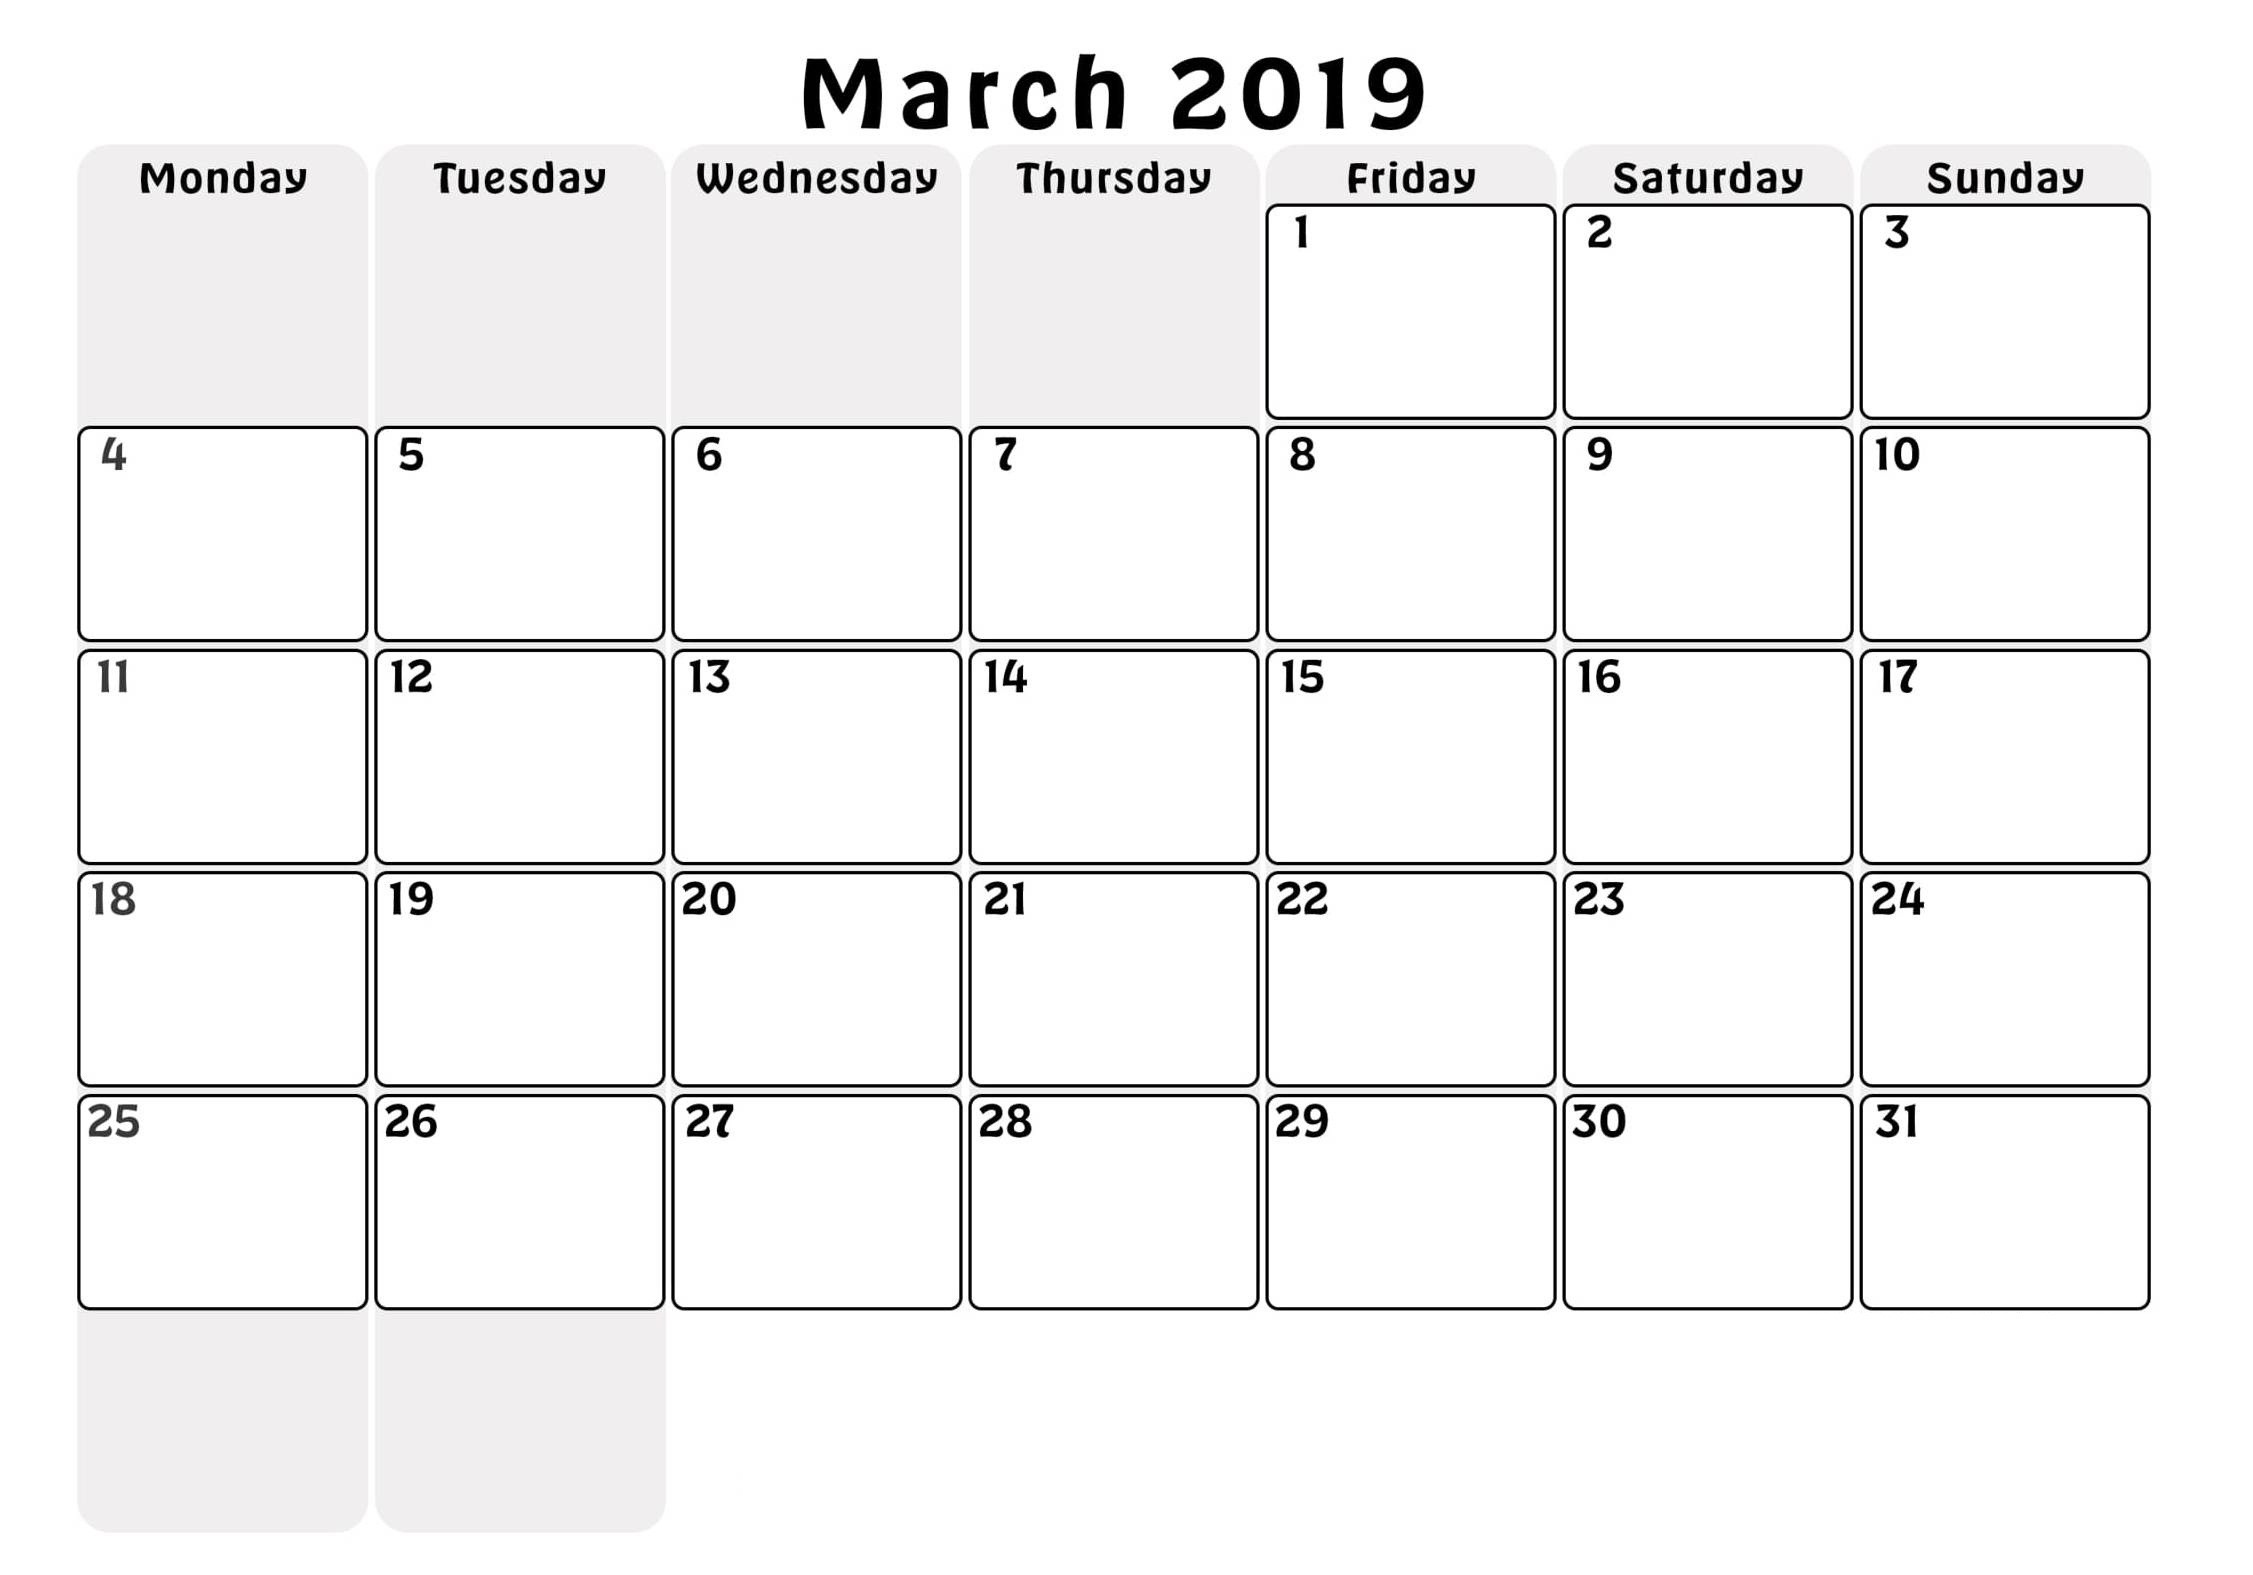 March Calendar 2019 Más Reciente 2019 March Calendar Png 2018 Printable Calendar Store Of March Calendar 2019 Más Actual Odia Calendar 2019 with March Odishain